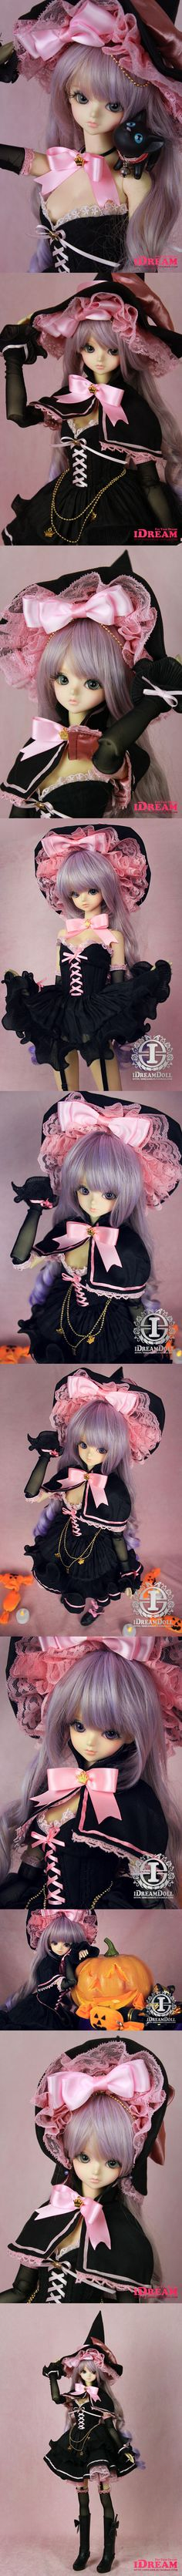 BJD Clothes【Black Cat】 Witches Suit for SD/MSD Ball-jointed Doll_SD_SD_CLOTHING_Ball Jointed Dolls (BJD) company-Legenddoll